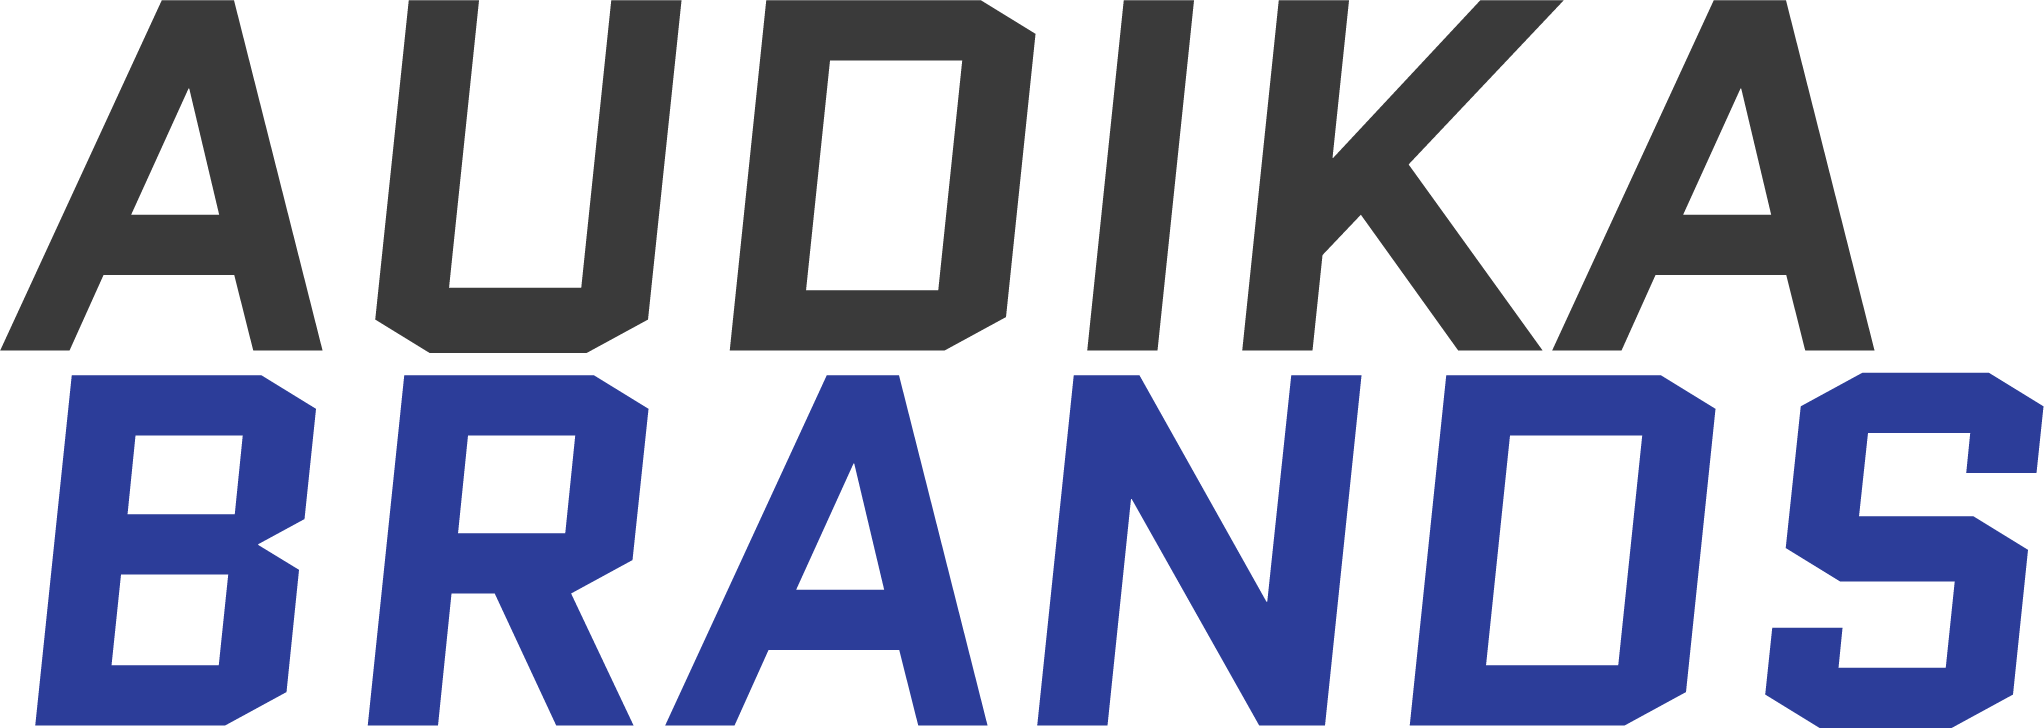 Audika Brands